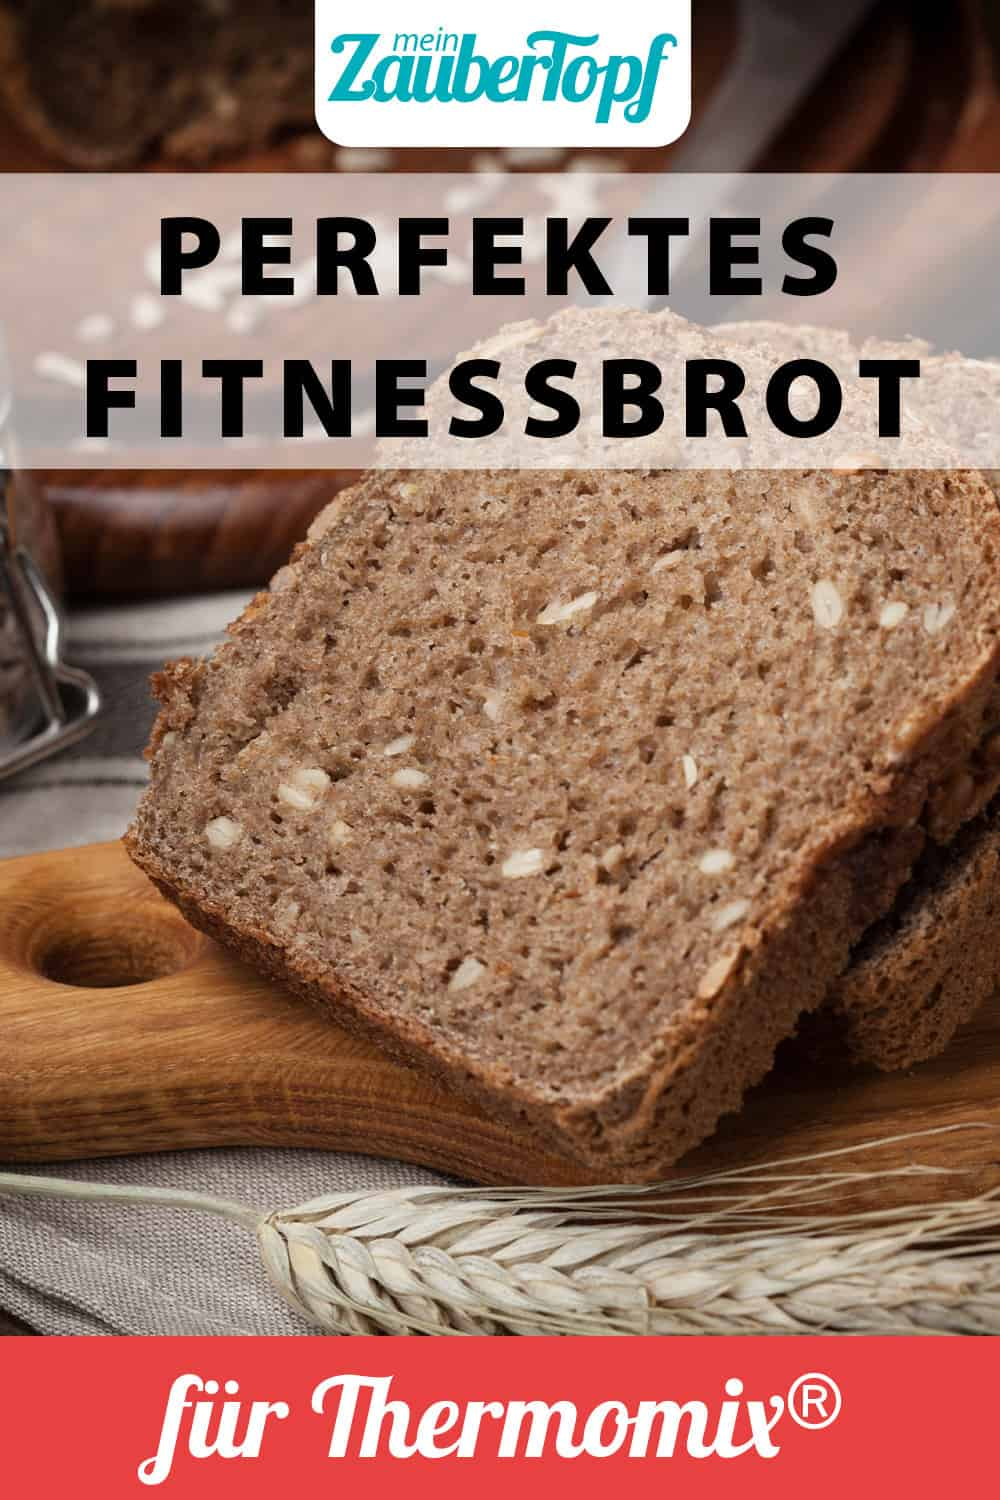 Fitnessbrot aus dem Thermomix® - Foto: gettyimages / arfo